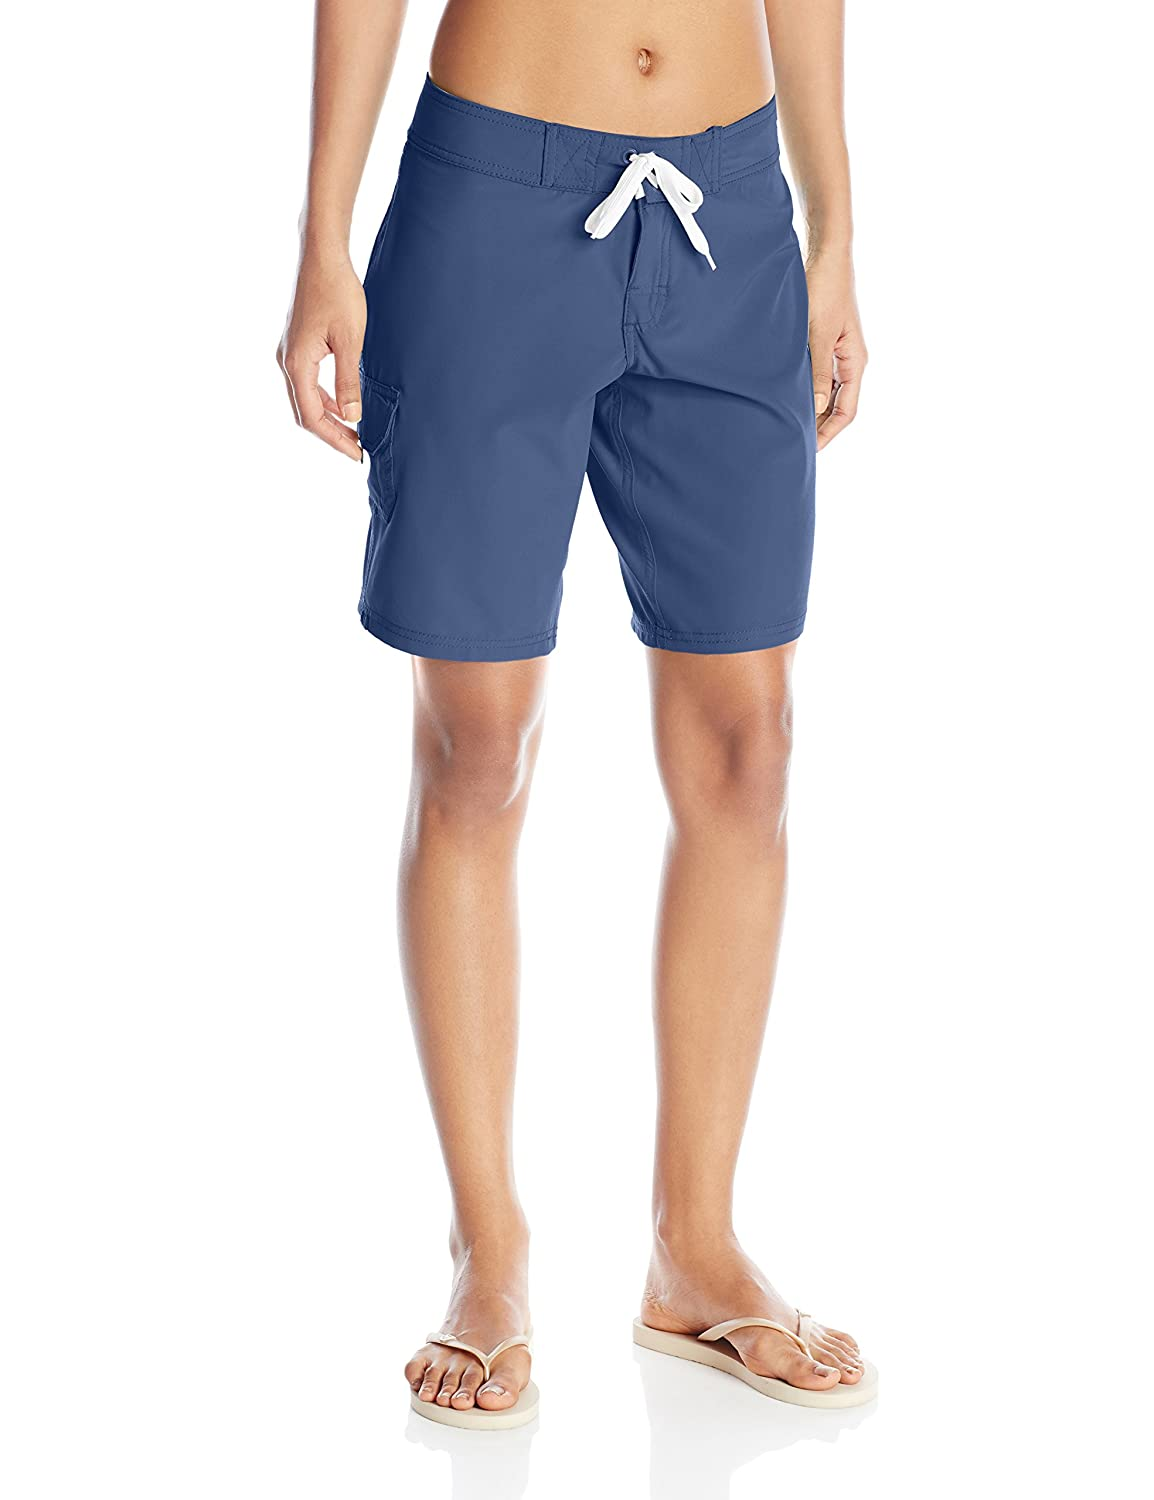 51ca252f9d Kanu Surf Women's Marina Solid Stretch Boardshort at Amazon Women's  Clothing store: